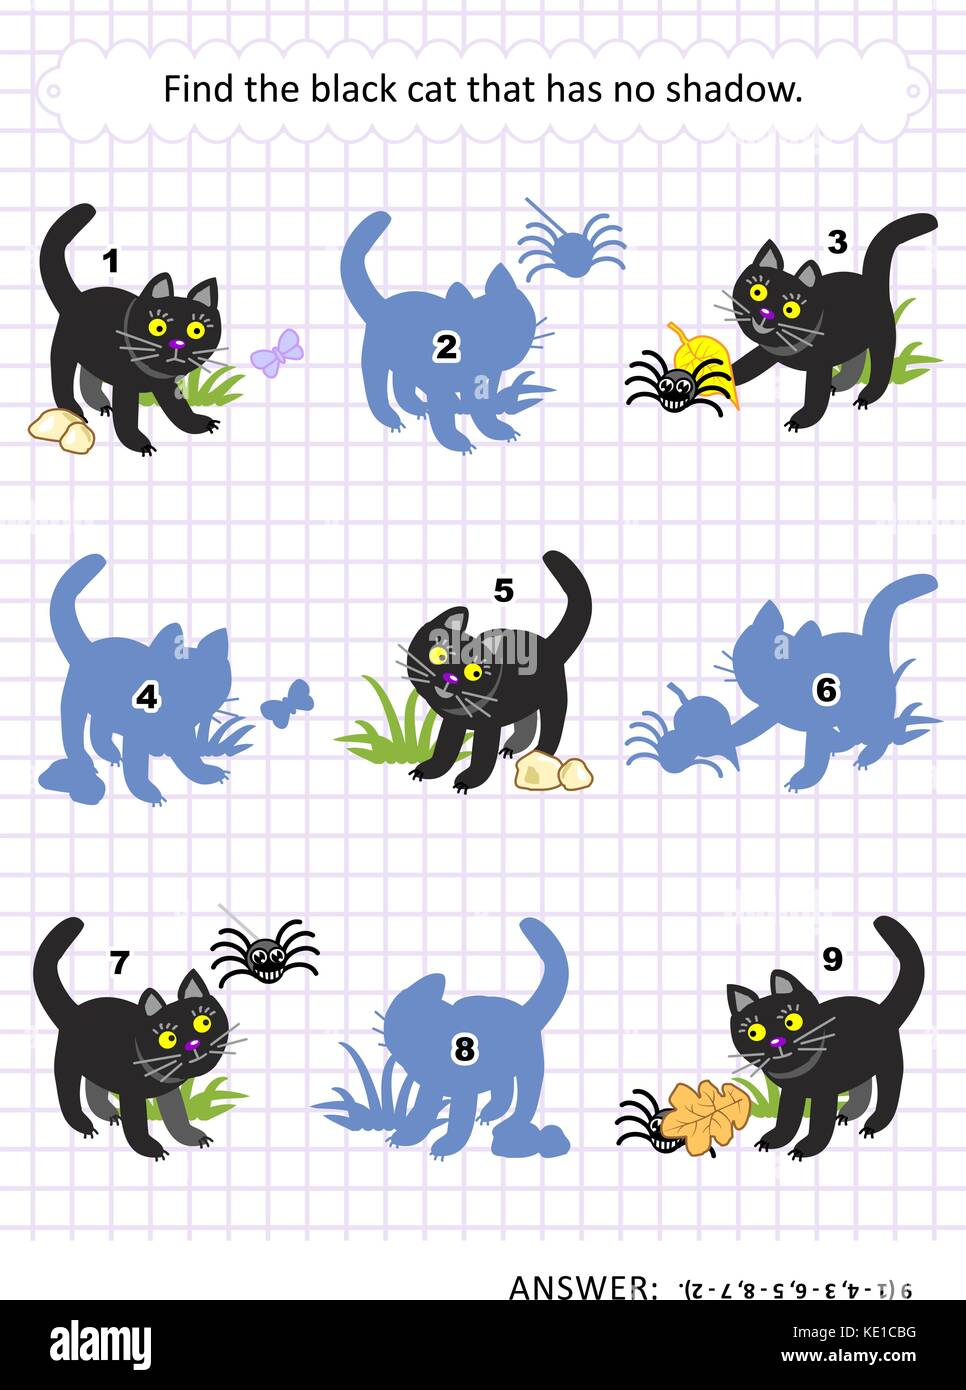 Halloween themed visual puzzle or picture riddle with black cat: Find the picture that has no shadow. Answer included. - Stock Image